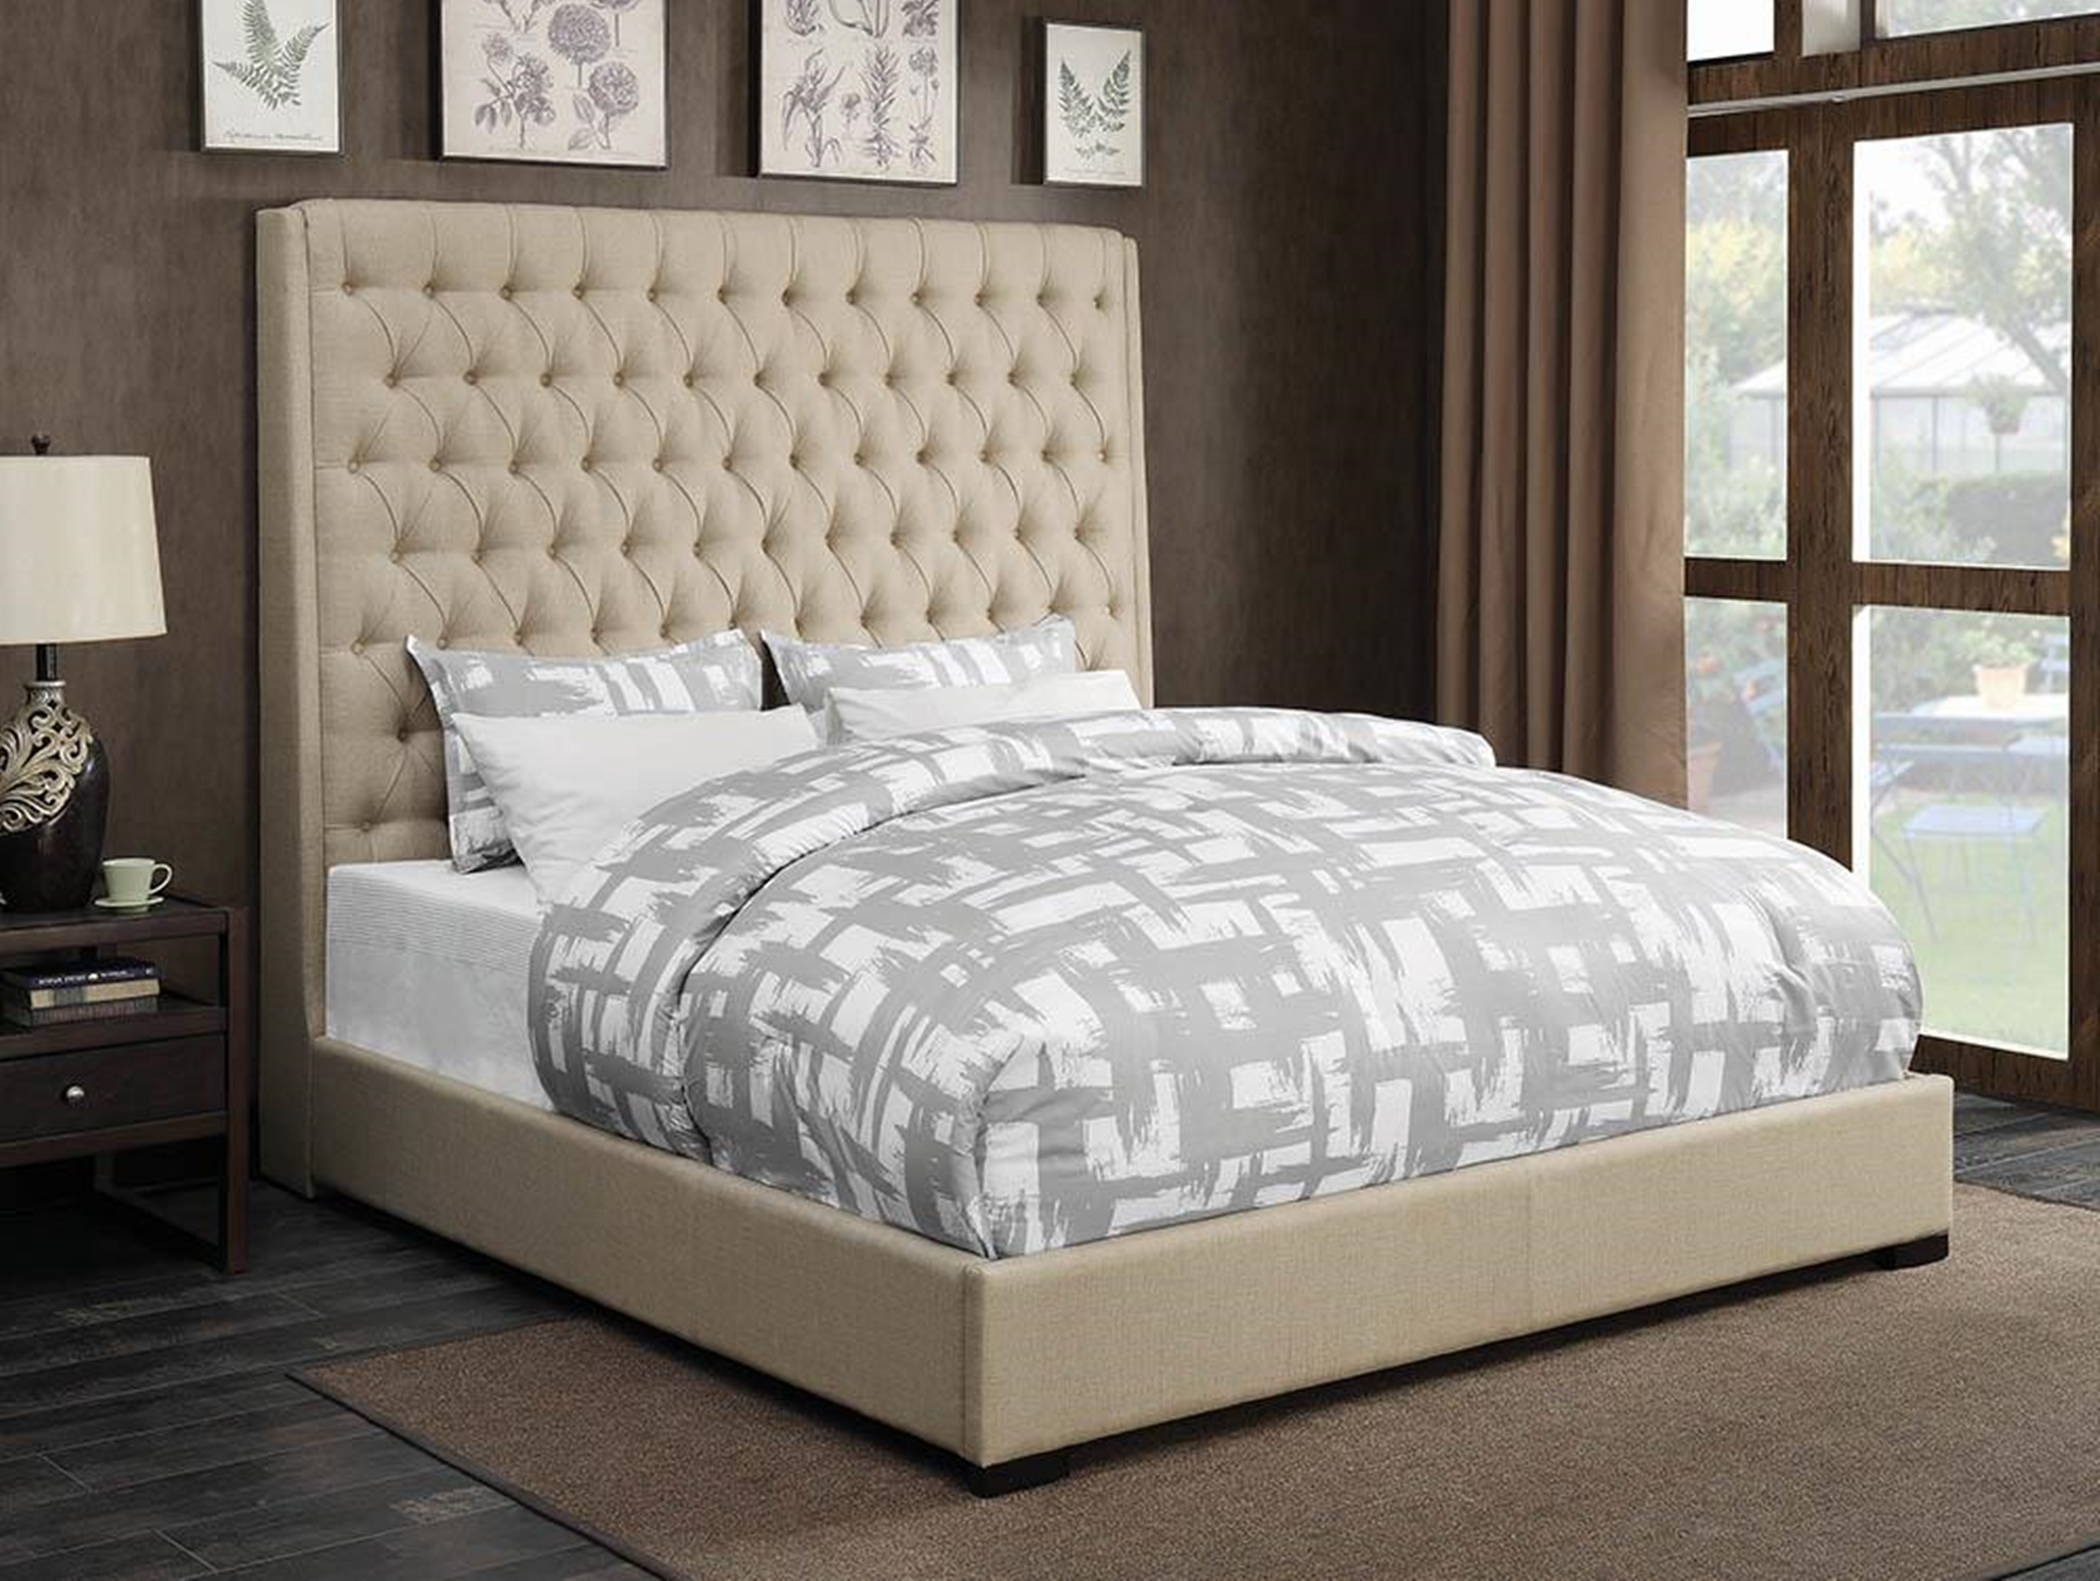 Camille Cream Upholstered Queen Bed